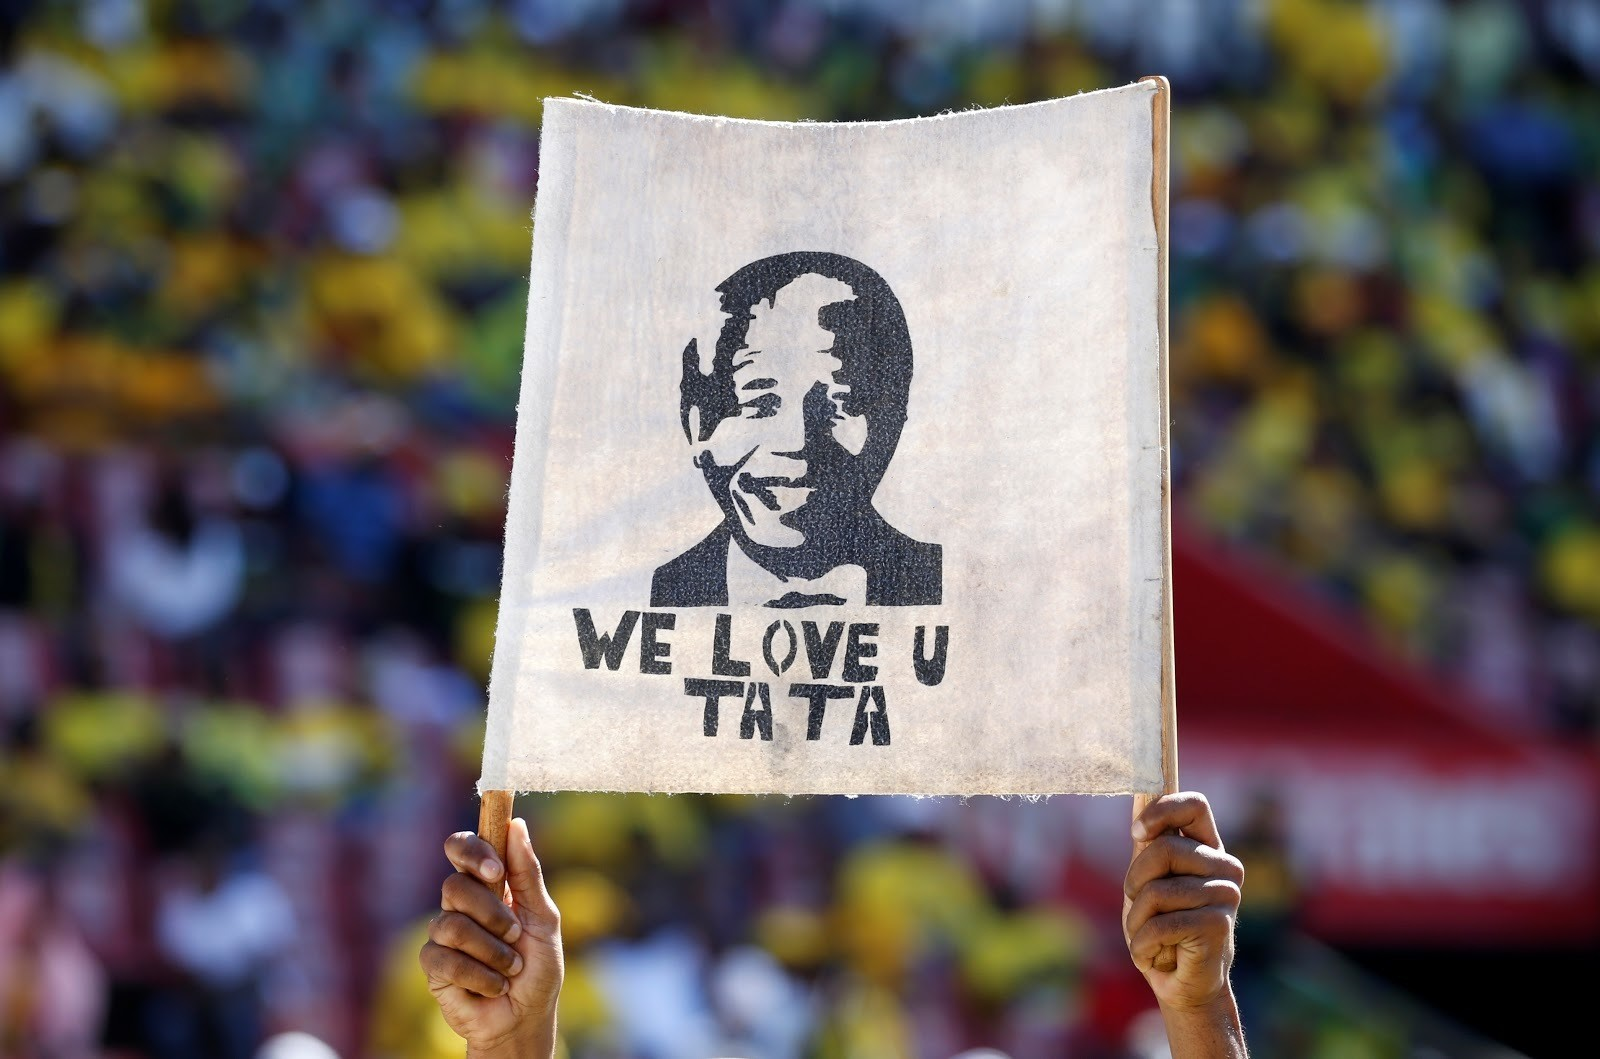 A supporter holds a placard with the face of the late Nelson Mandela, former President of South Africa, during the party's final rally at Ellis Park Stadium stadium in Johannesburg, South Africa, May 5, 2019. REUTERS/Siphiwe Sibeko - RC1B4D73C0F0